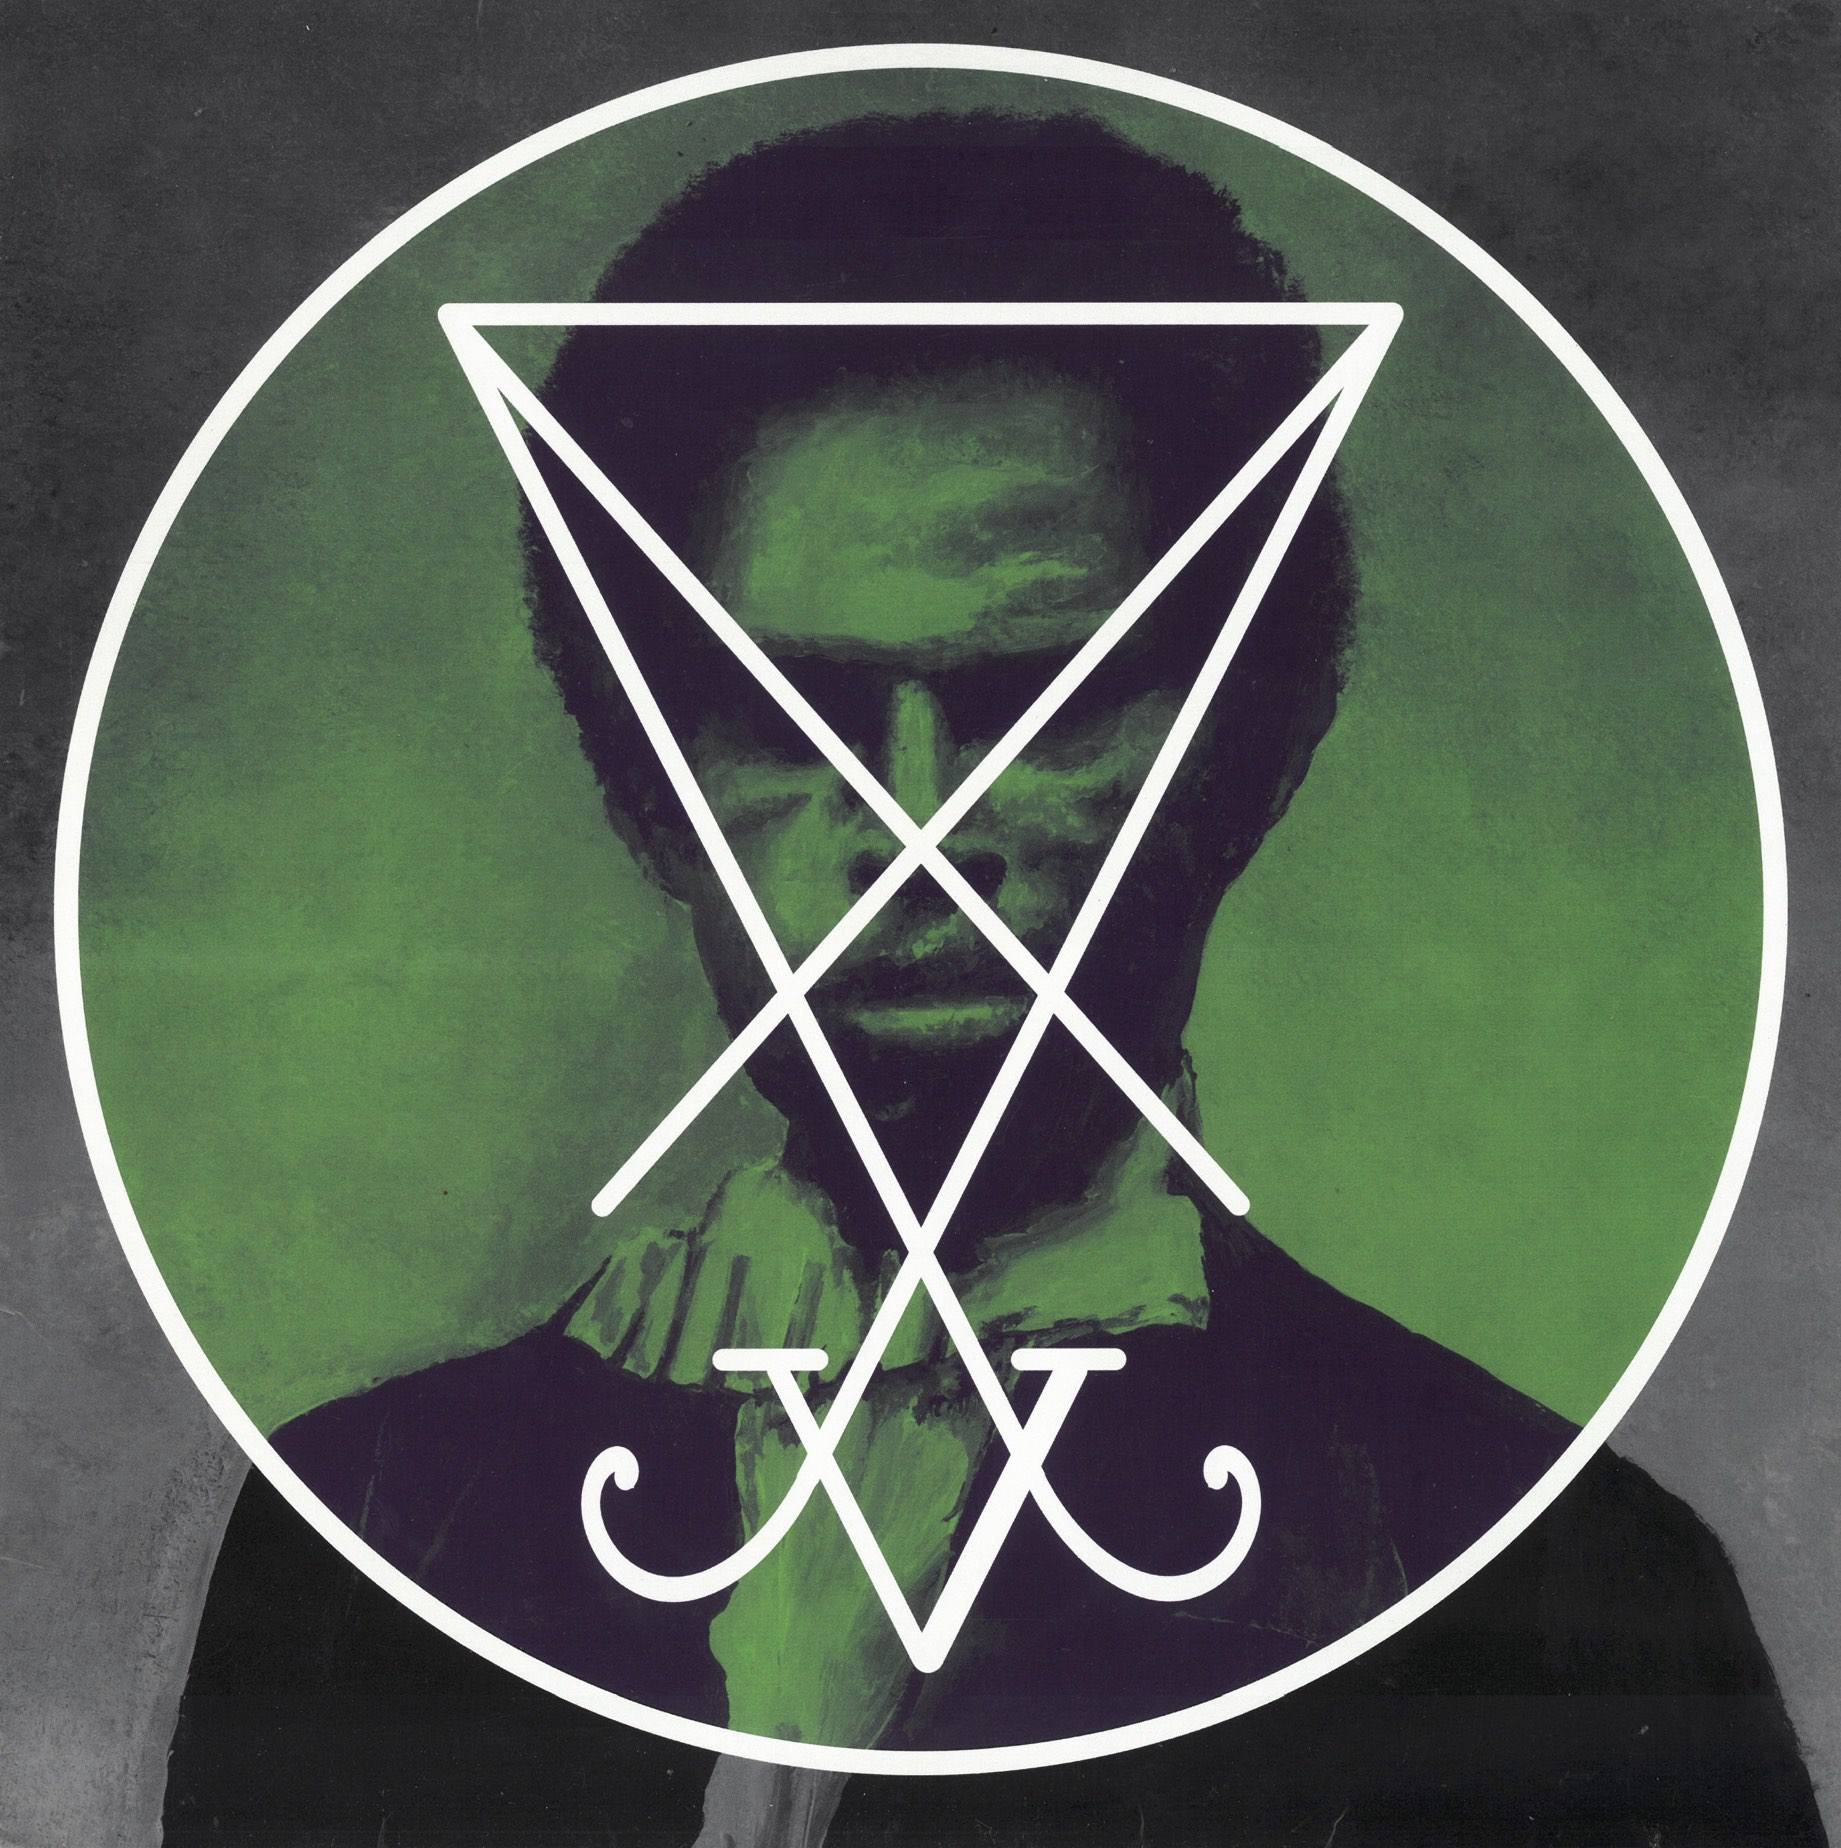 2017 - Zeal And Ardor